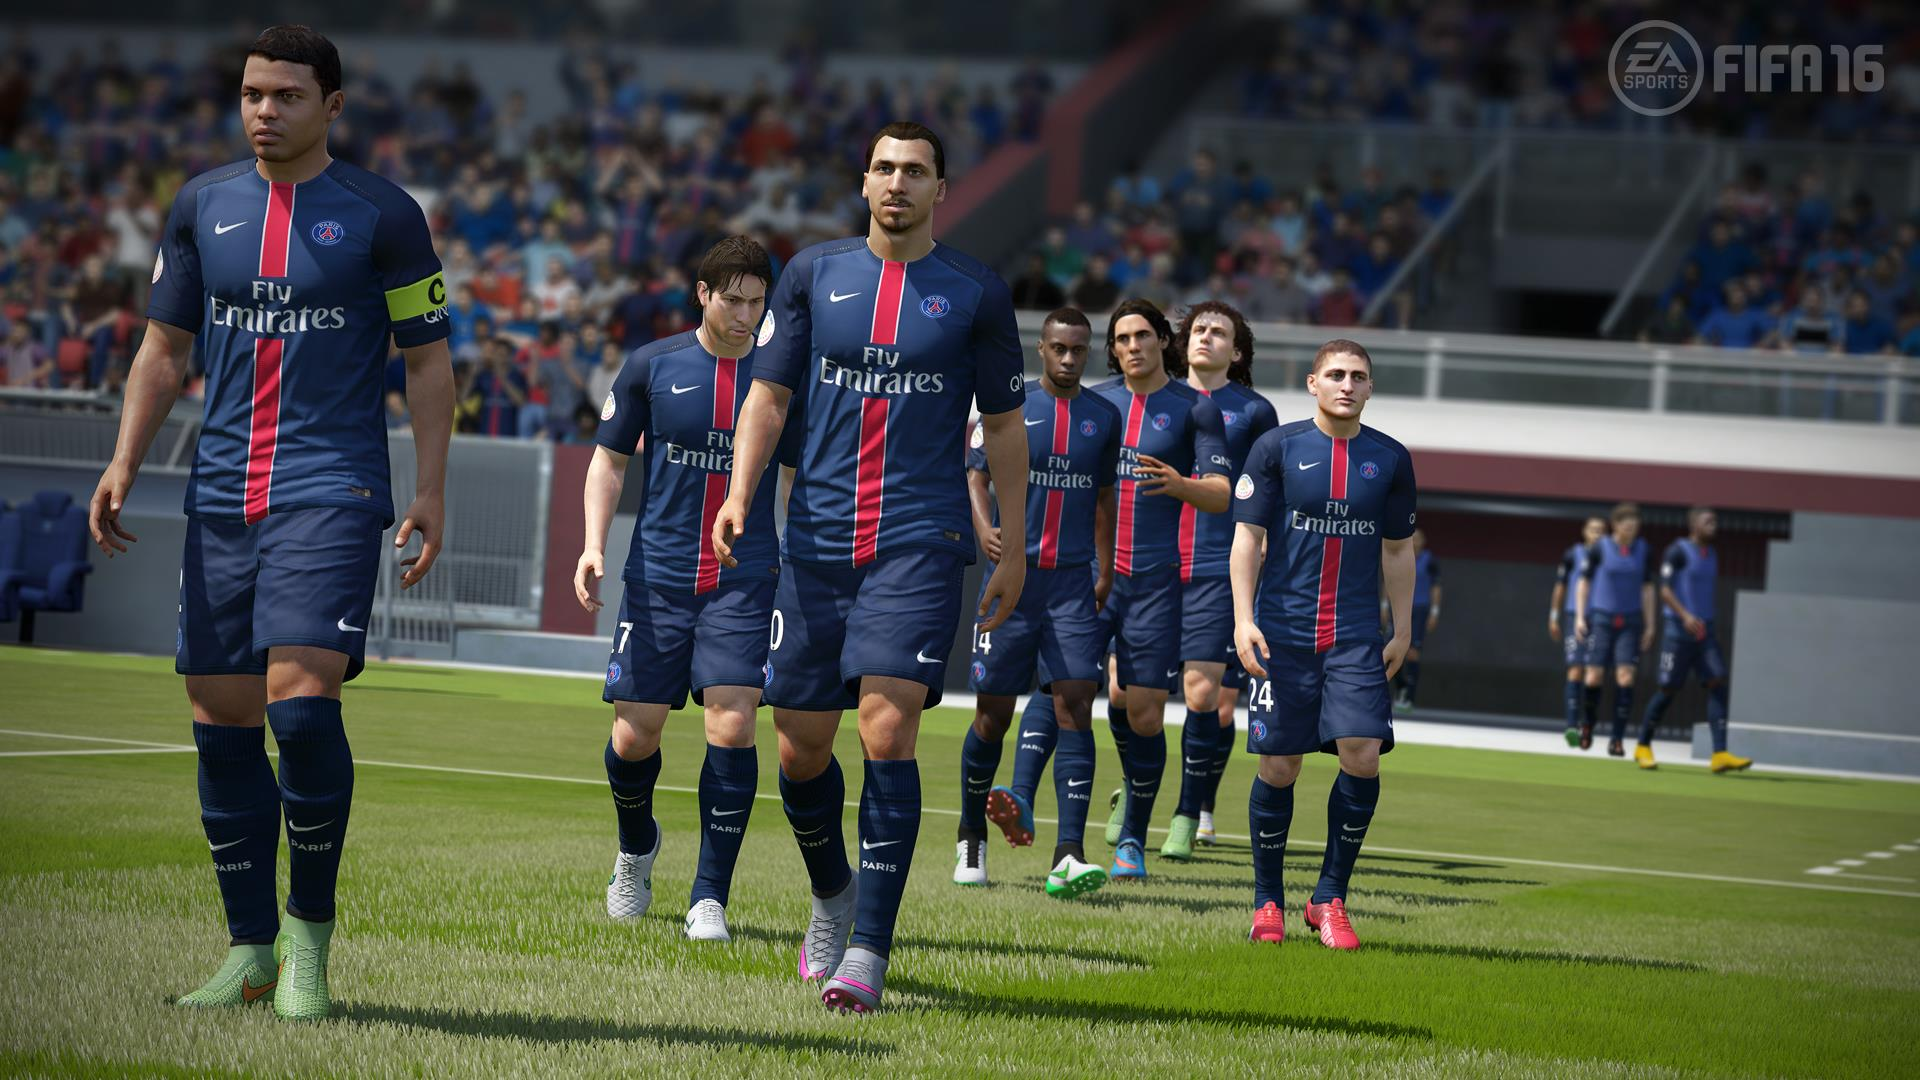 The Top 10 Clubs In FIFA 16